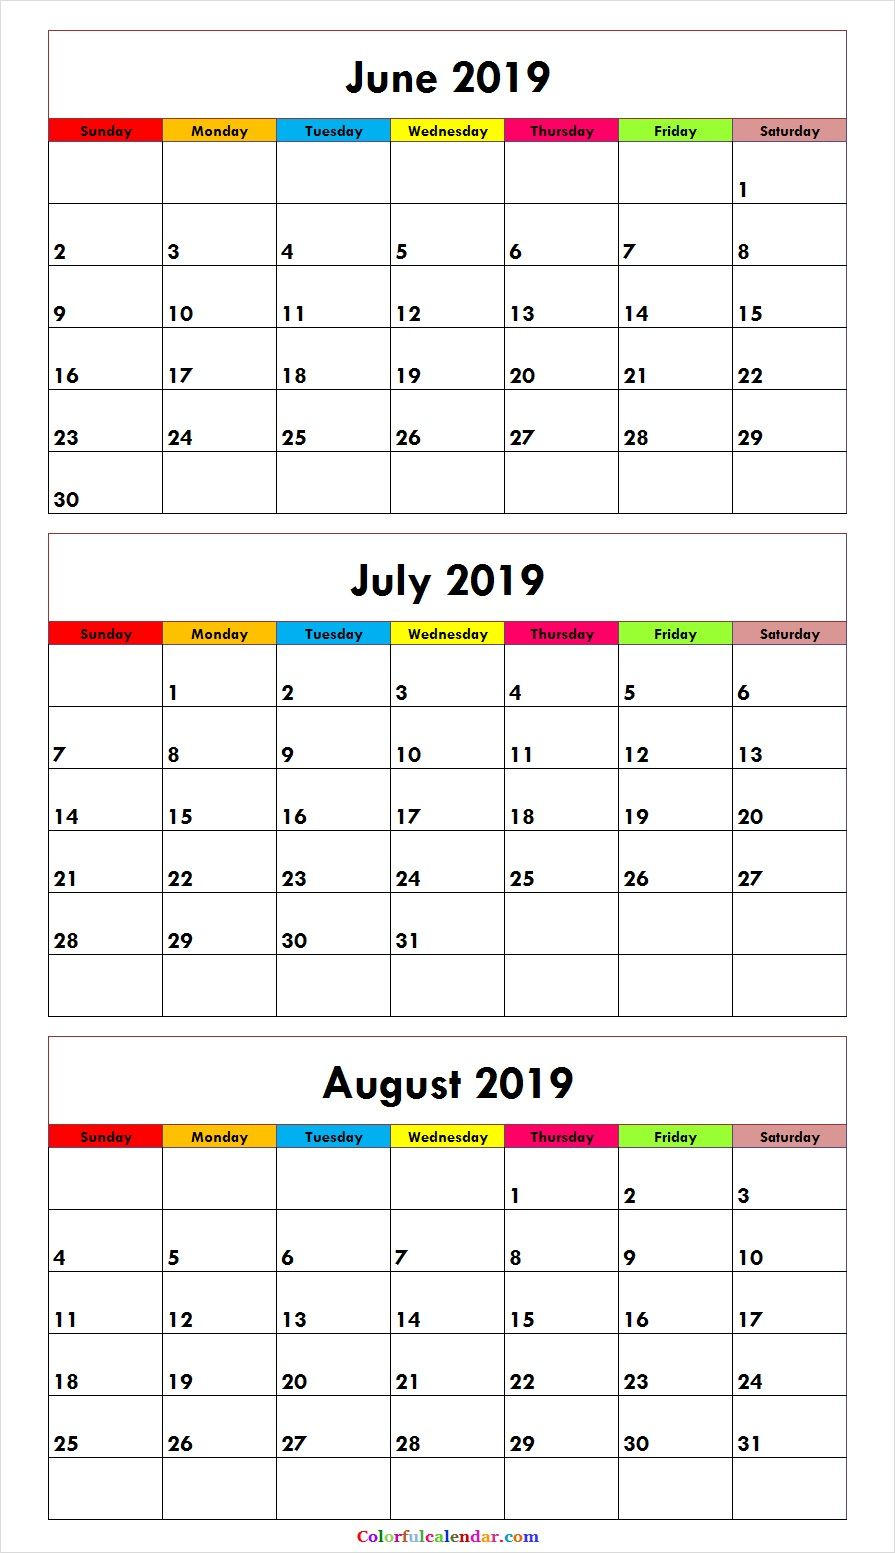 New Cute June July August 2019 Calendar Design Calendar June